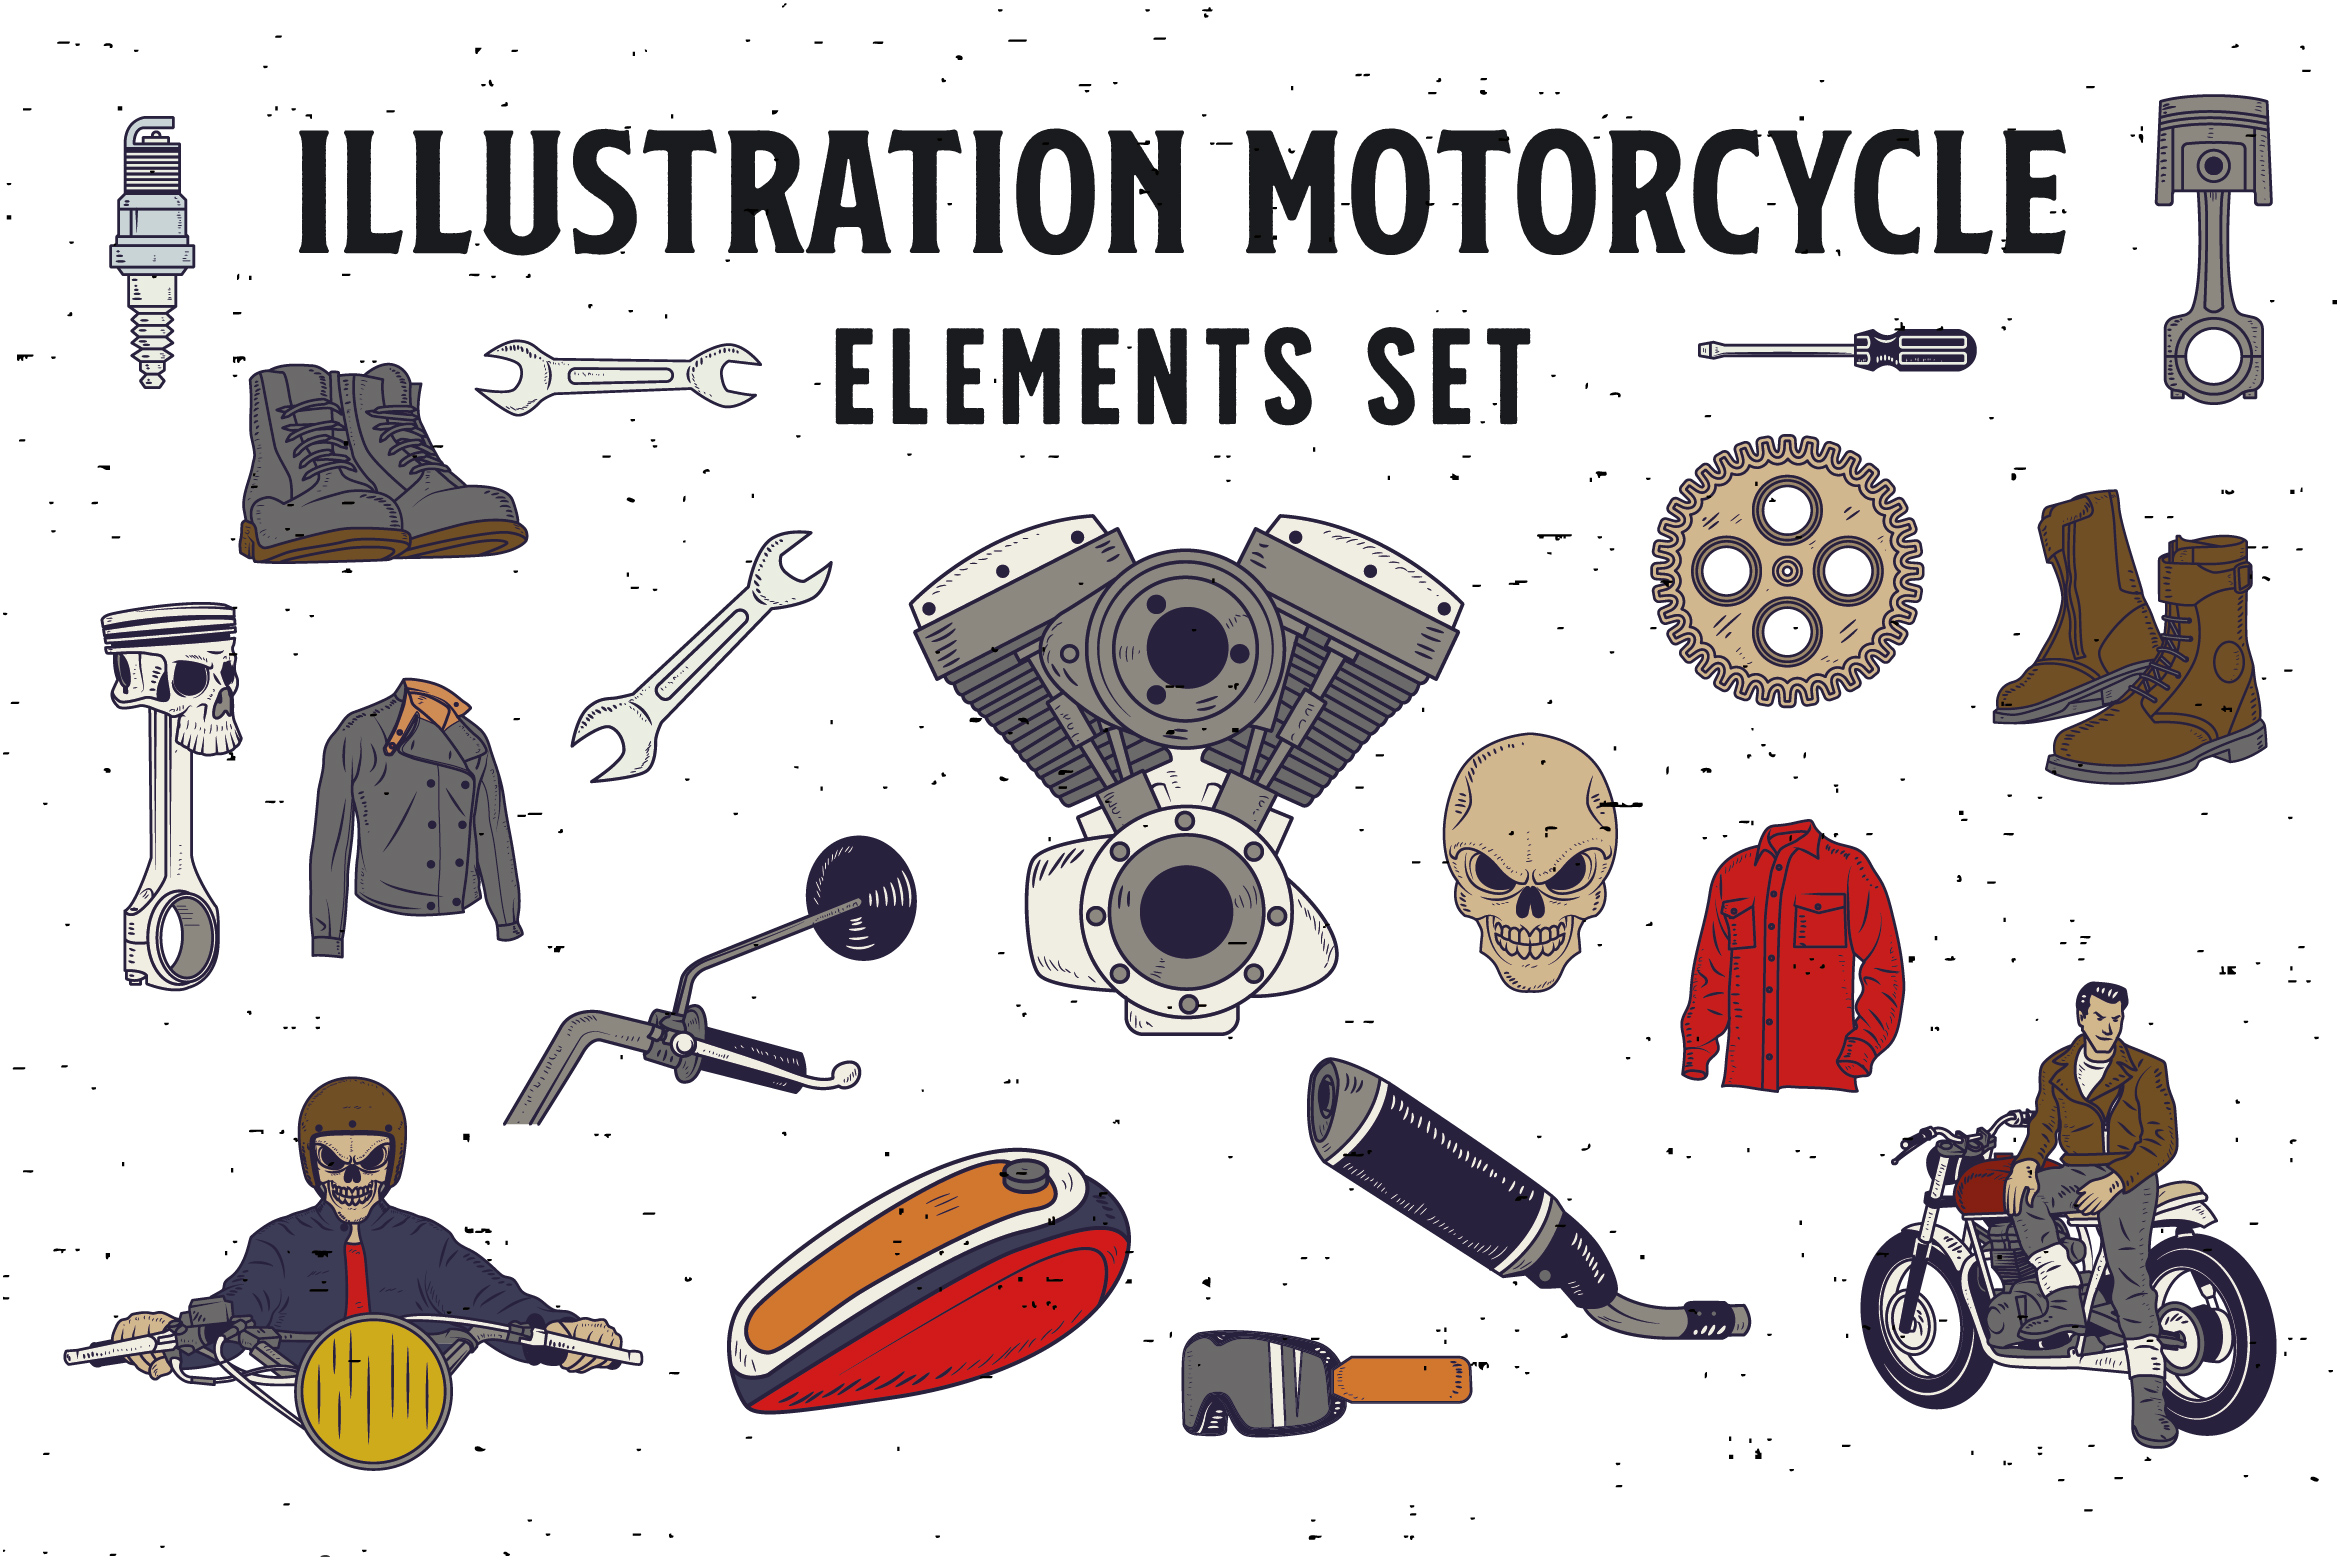 18 ILLUSTRATION MOTORCYCLE ELEMENTS Graphic By storictype